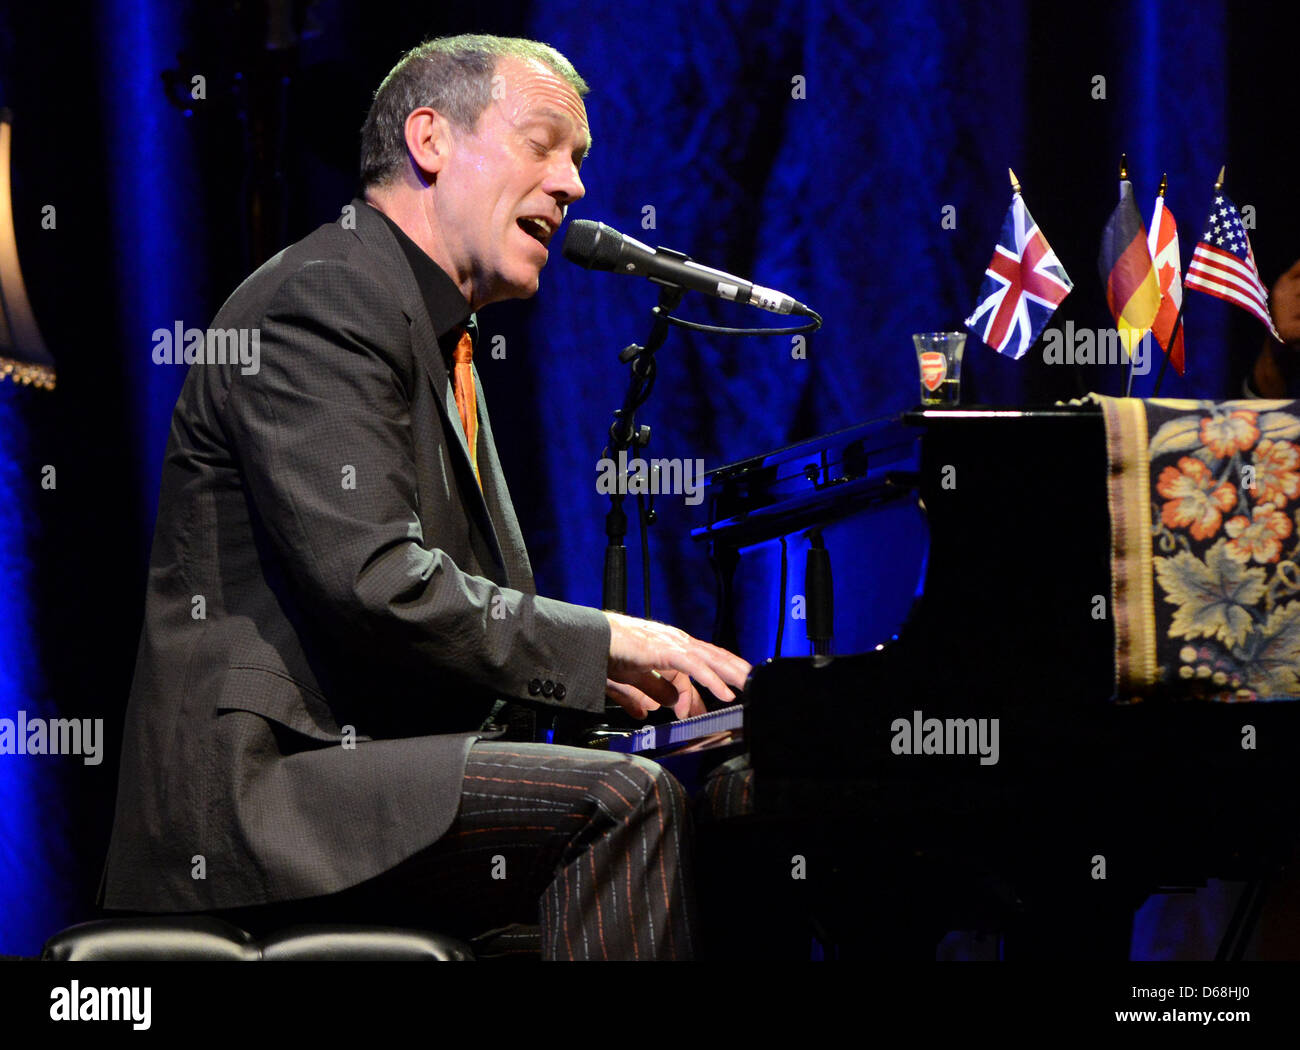 British musician and actor Hugh Laurie of 'Dr. House' fame performs live at Tempodrom in Berlin, Germany, - Stock Image